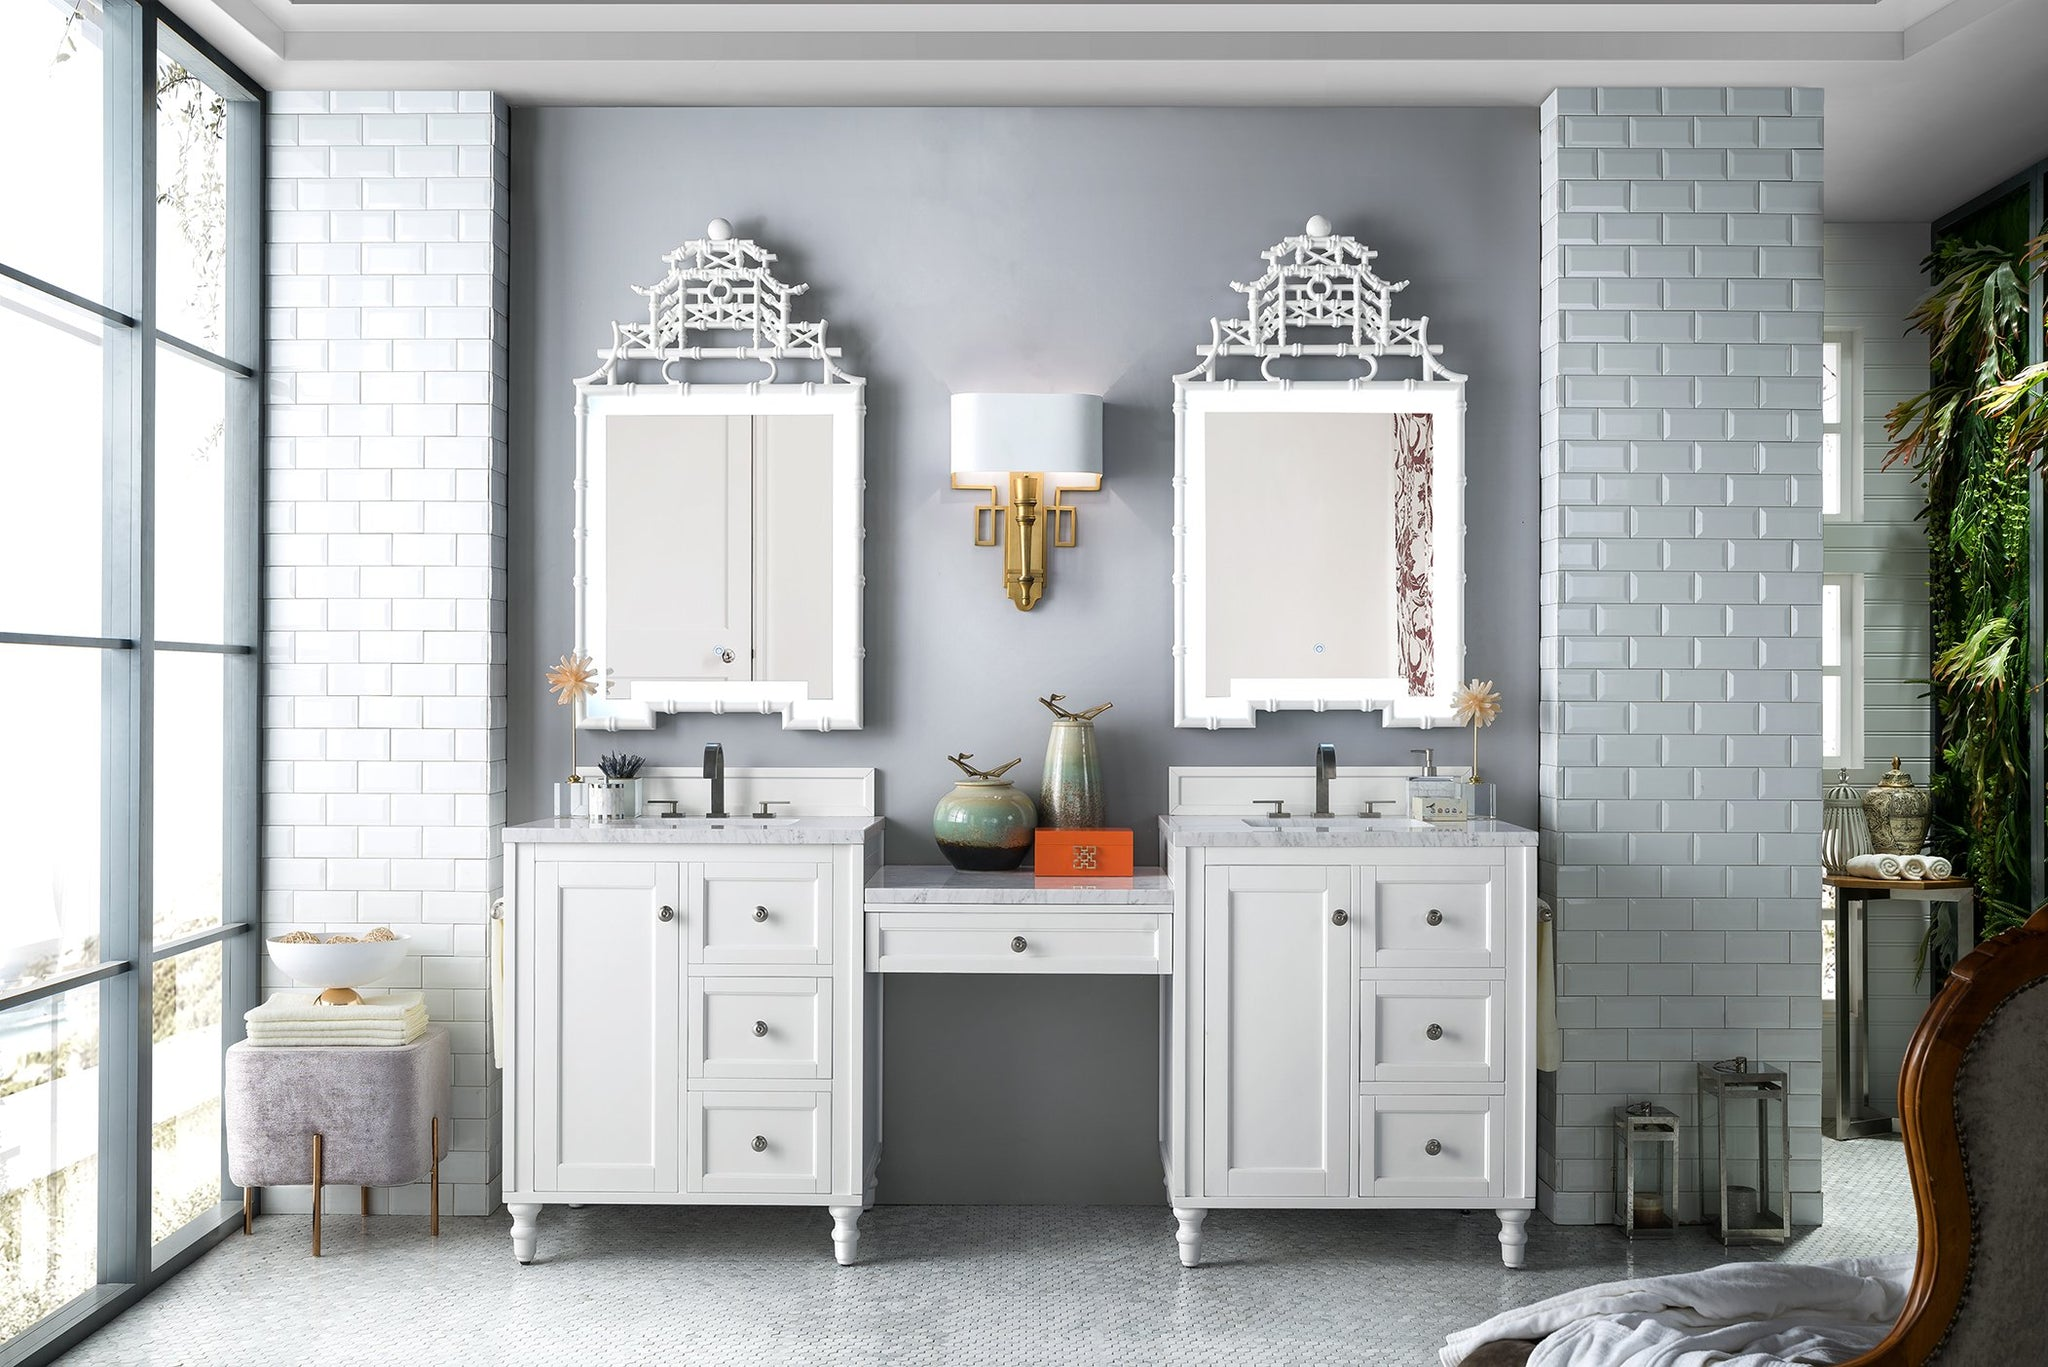 "Copper Cove Encore 86"" Double Bathroom Vanity, Bright White Double bathroom Vanity James Martin Vanities"